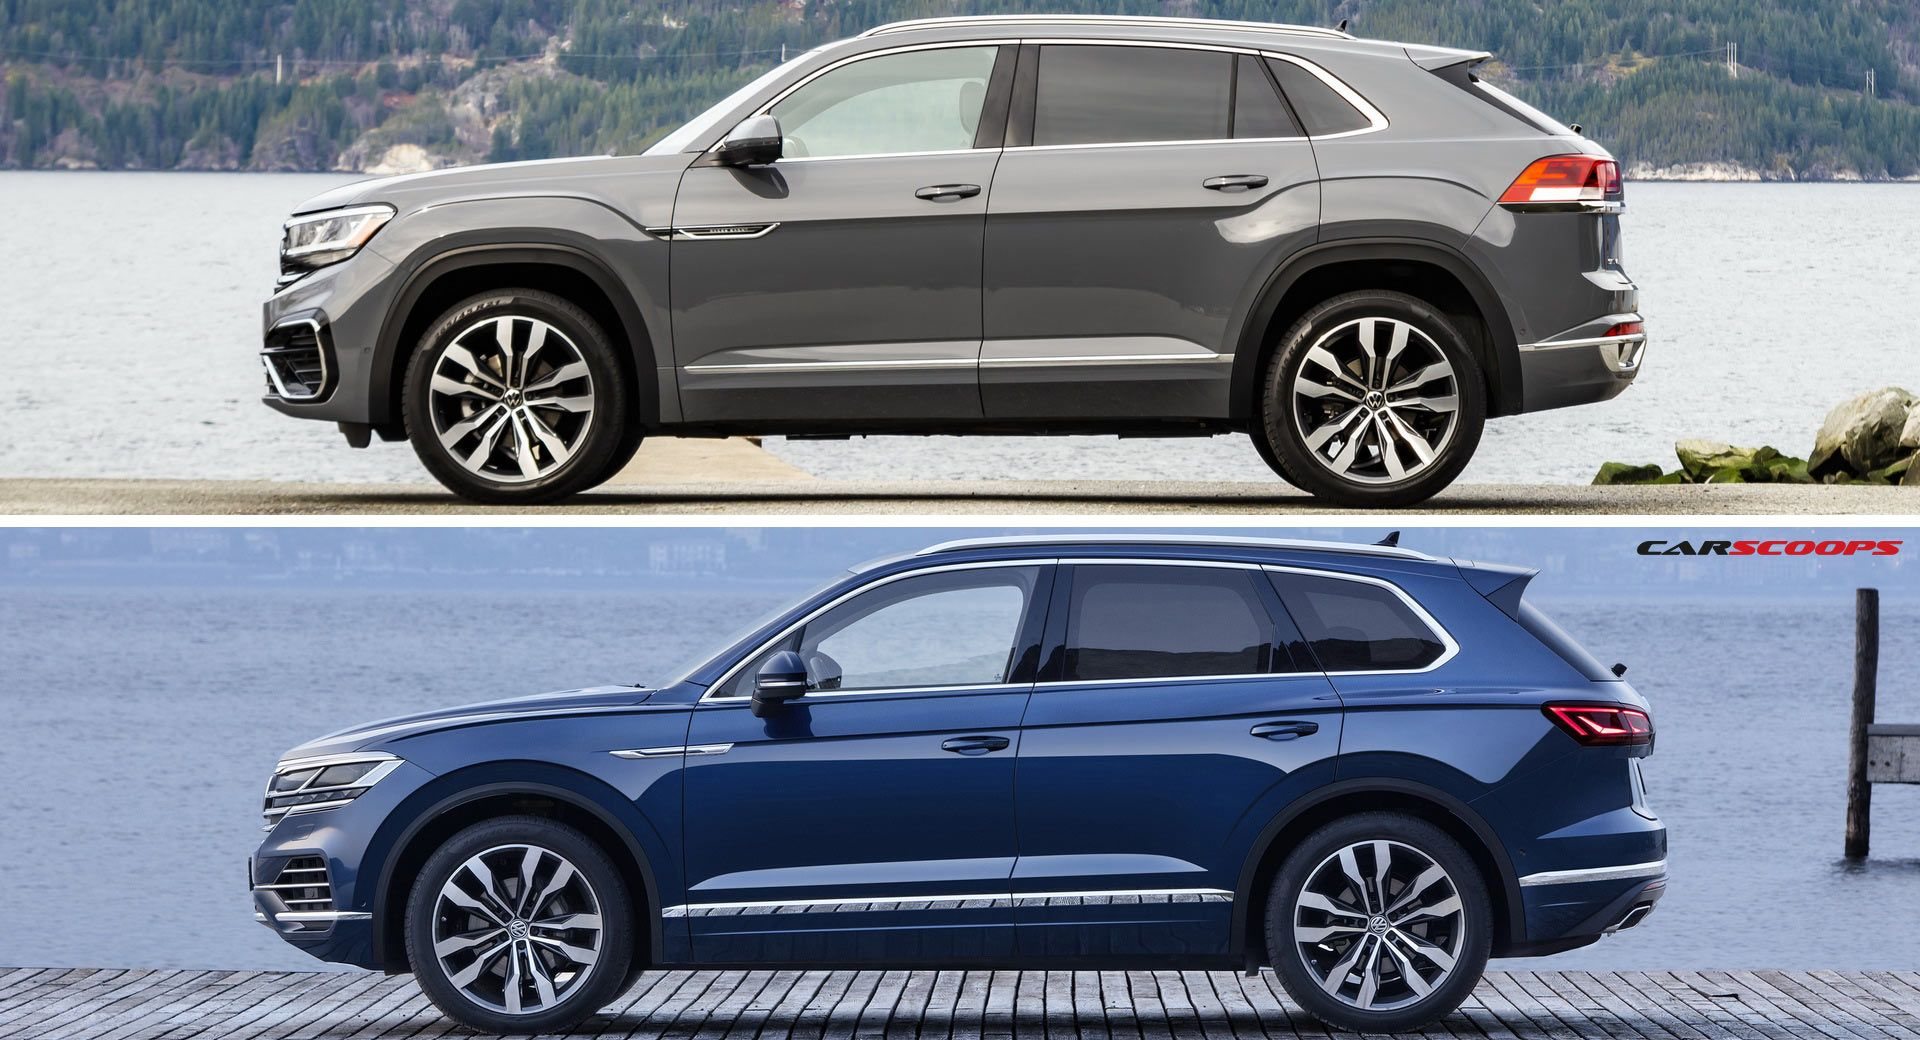 New 2017 VW Tiguan Photographed Completely Undisguised!